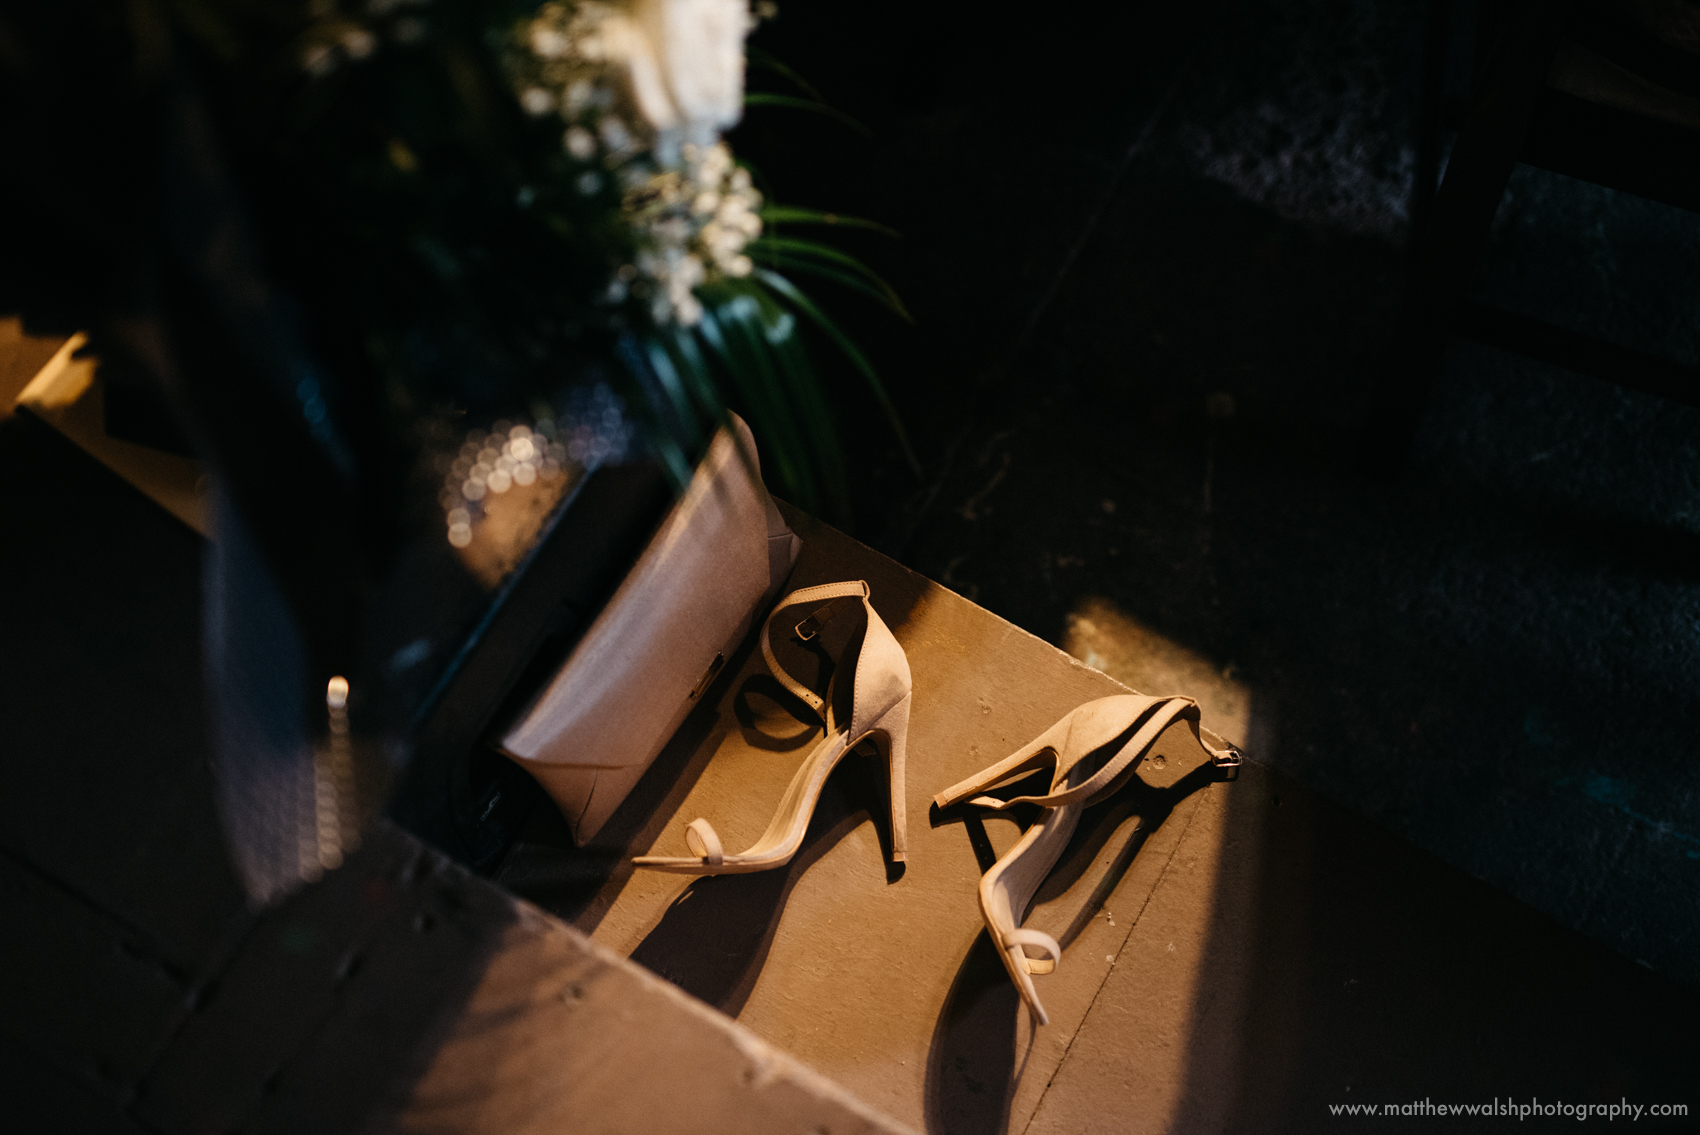 A detail of the brides shoes left on a step